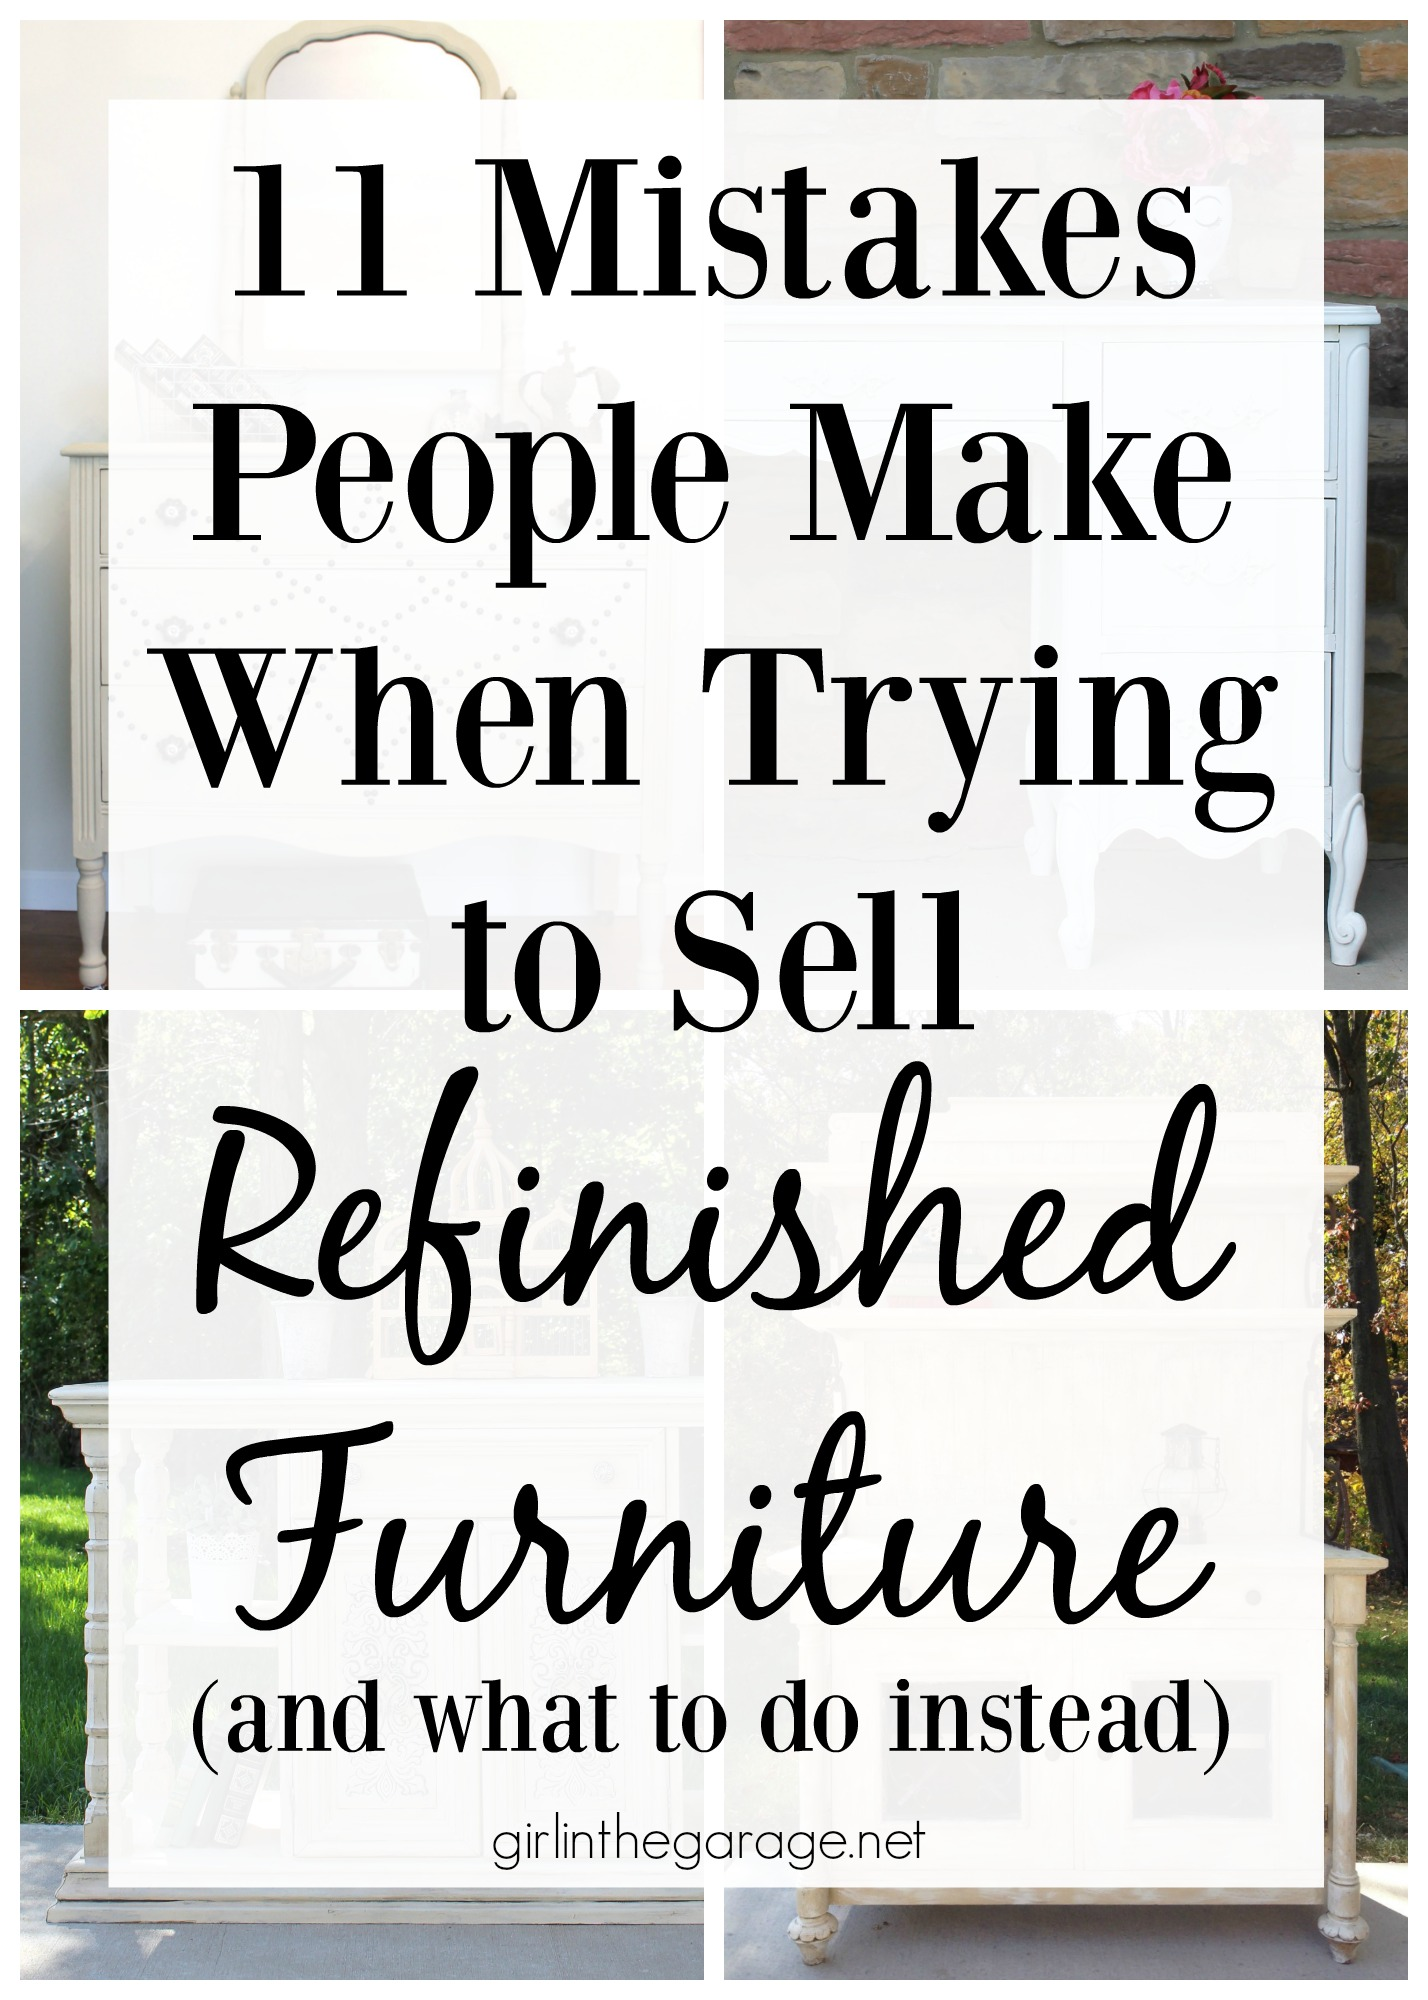 11 Mistakes People Make When Trying To Sell Refinished Furniture